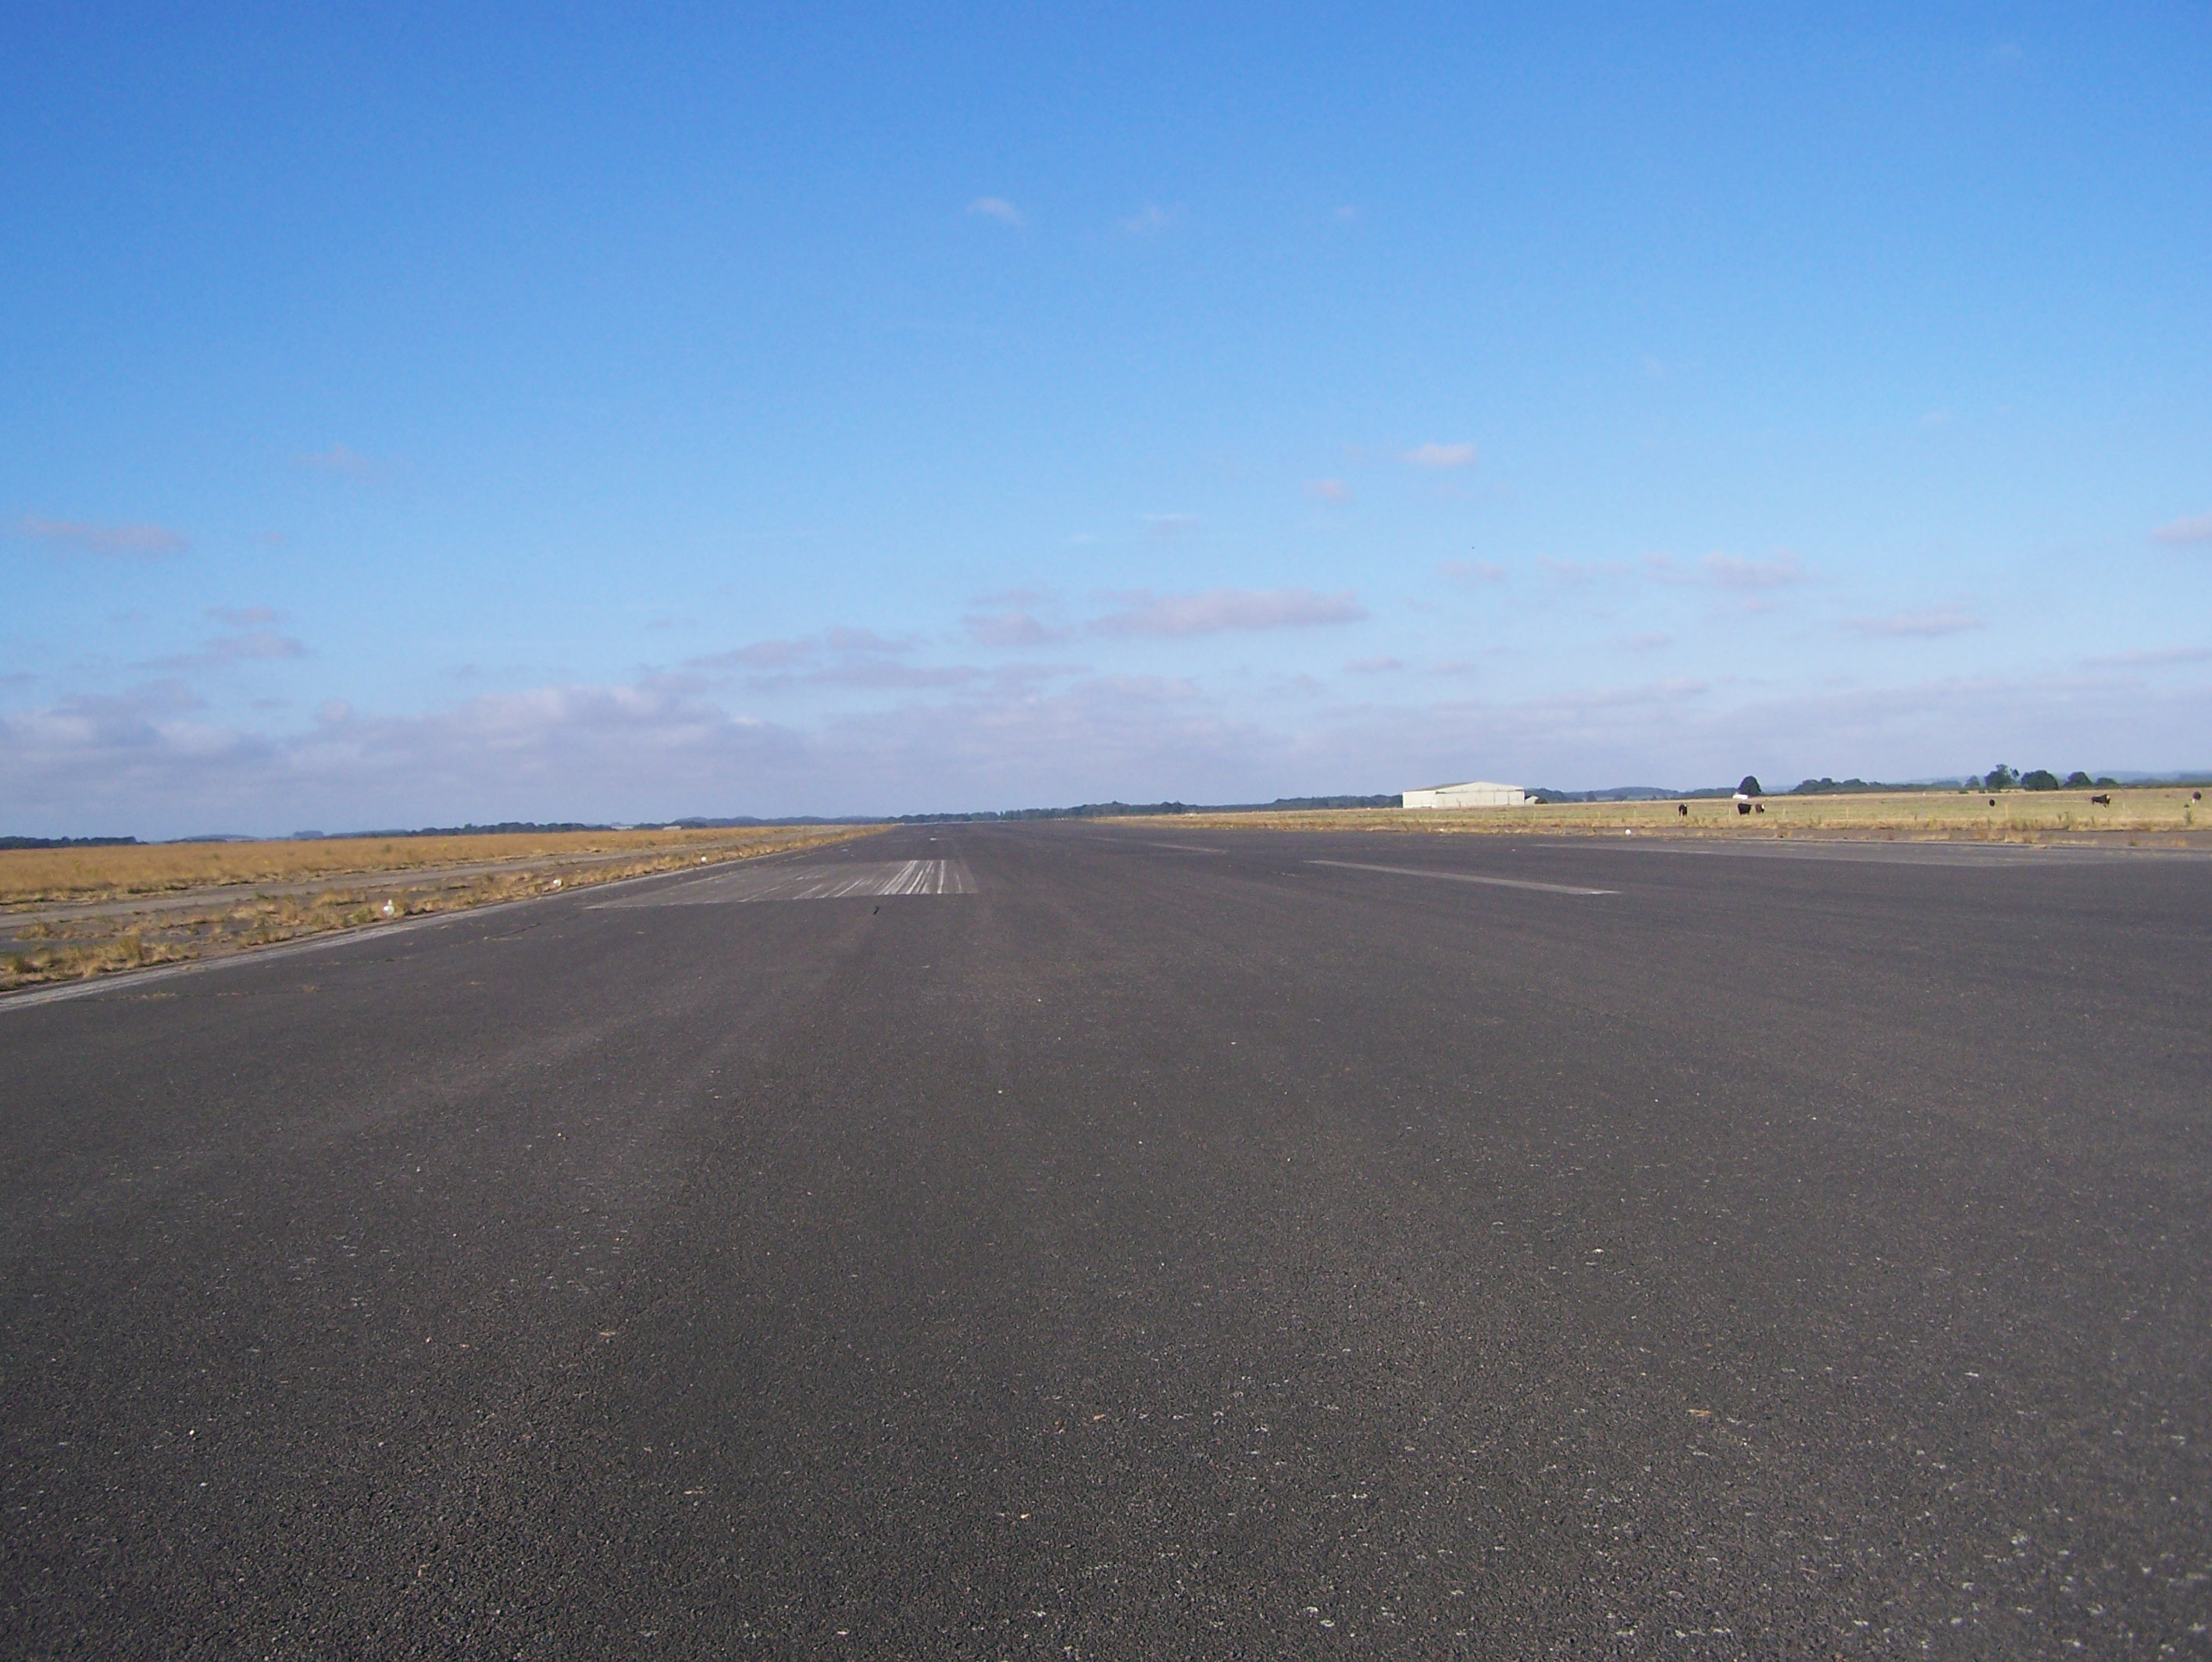 South-west end of 3,000 yards long 06:24 main runway 15:07:2006.JPG